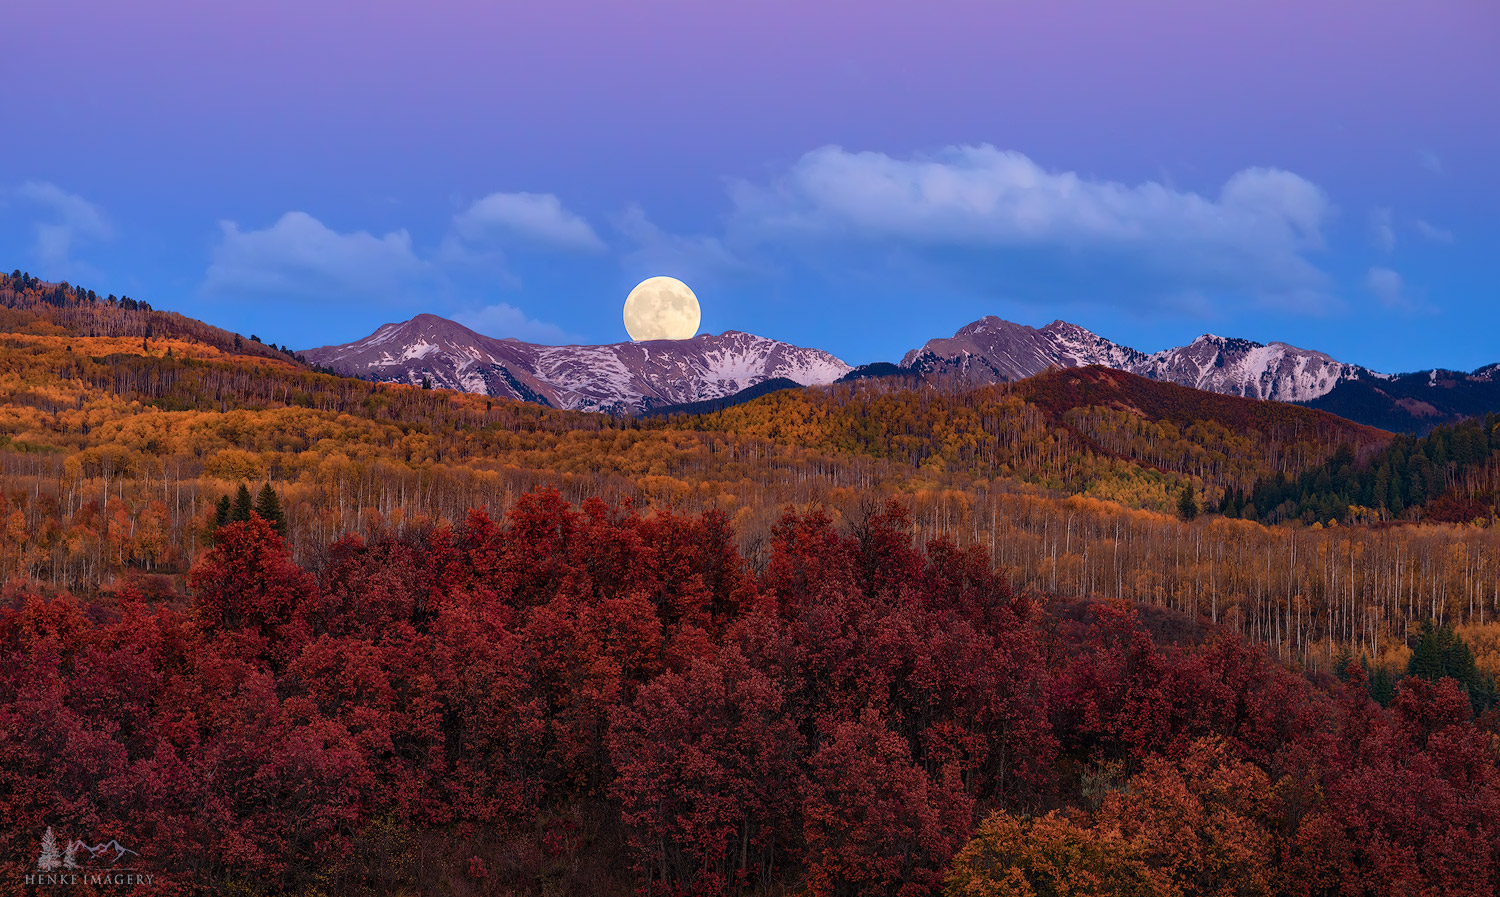 A fall harvest moon rises over the Elk Mountains in Colorado.